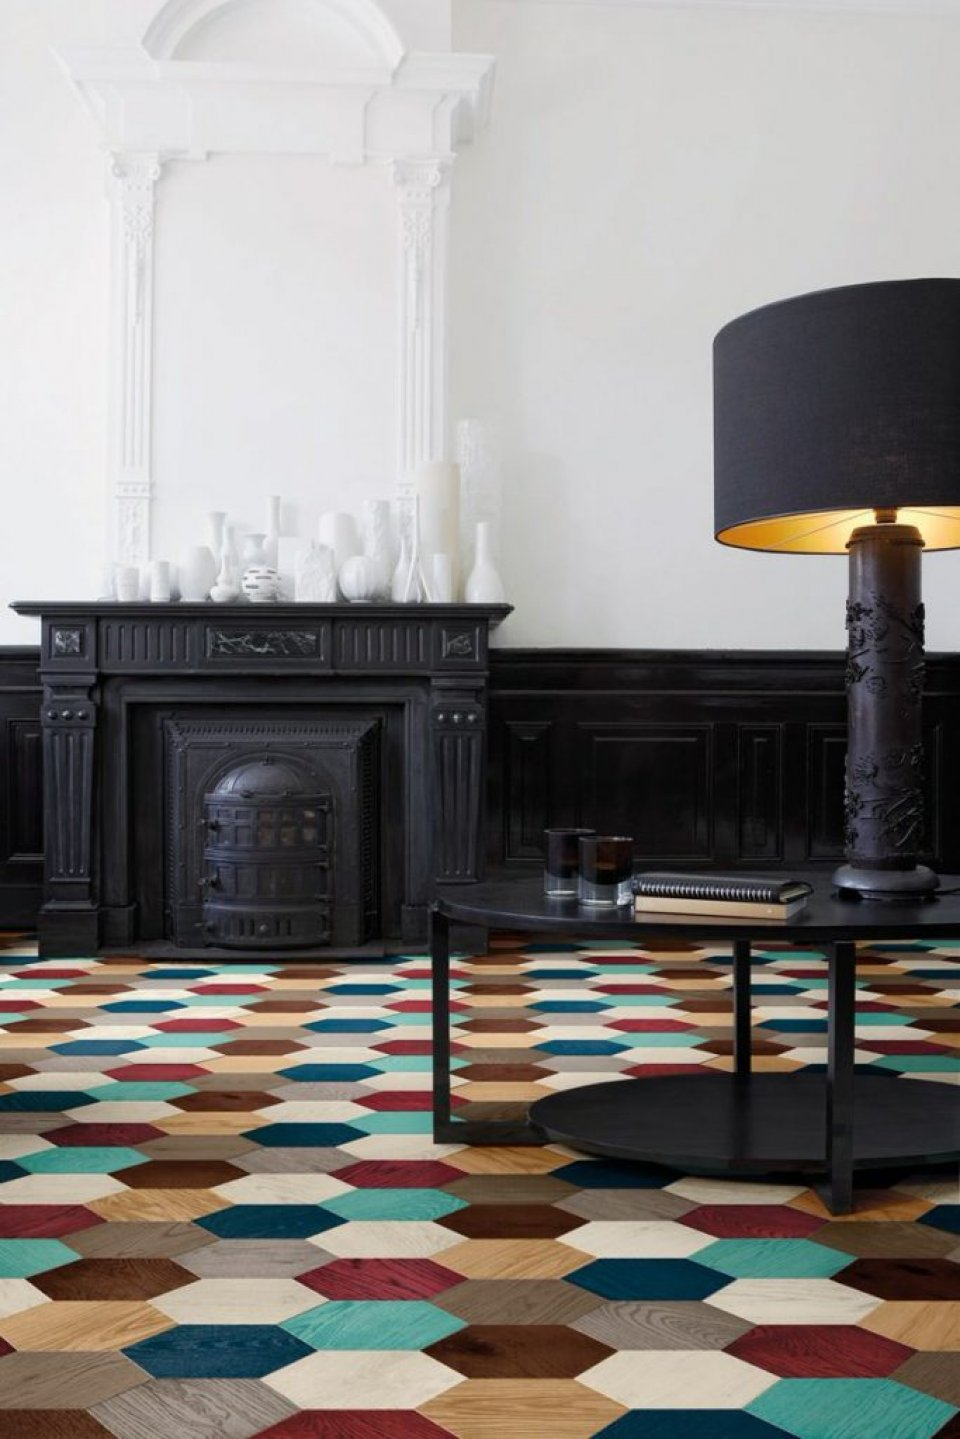 Hexagonal Parquet Wood Floor Tiles by Edward van Vliet for Bisazza 683x1024